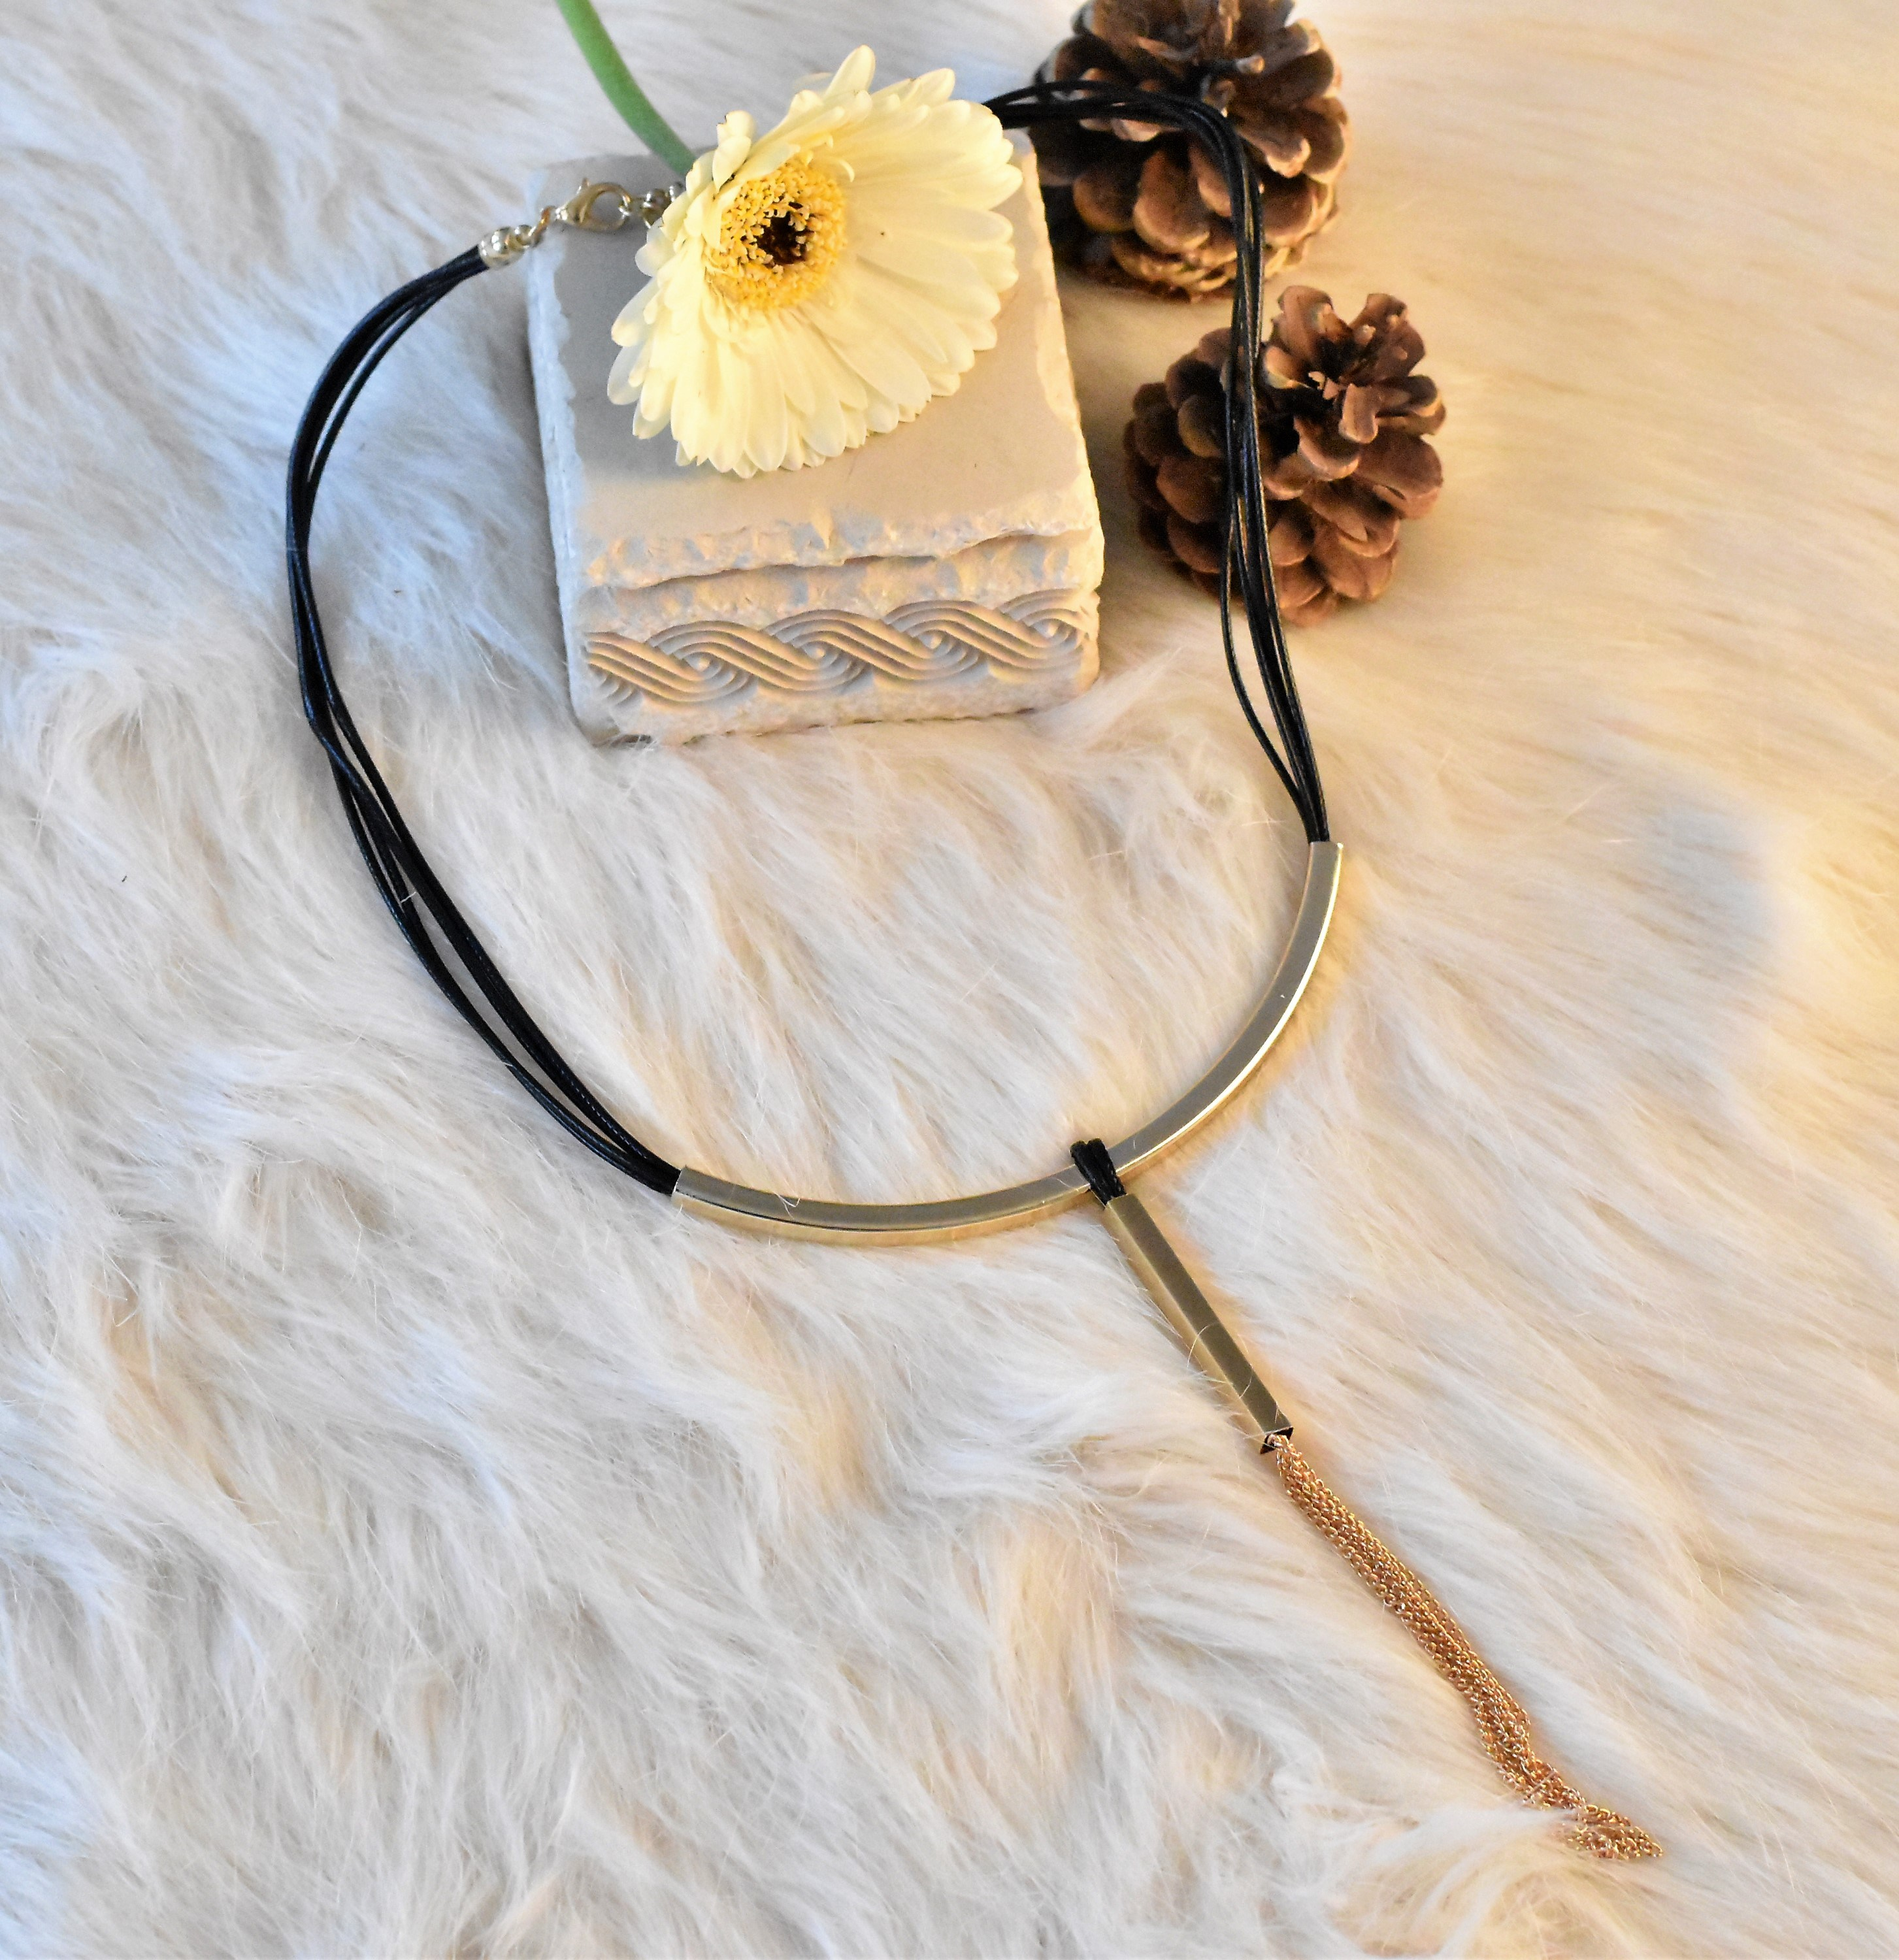 Black & Gold Tasseled Choker from Grab Your Garb